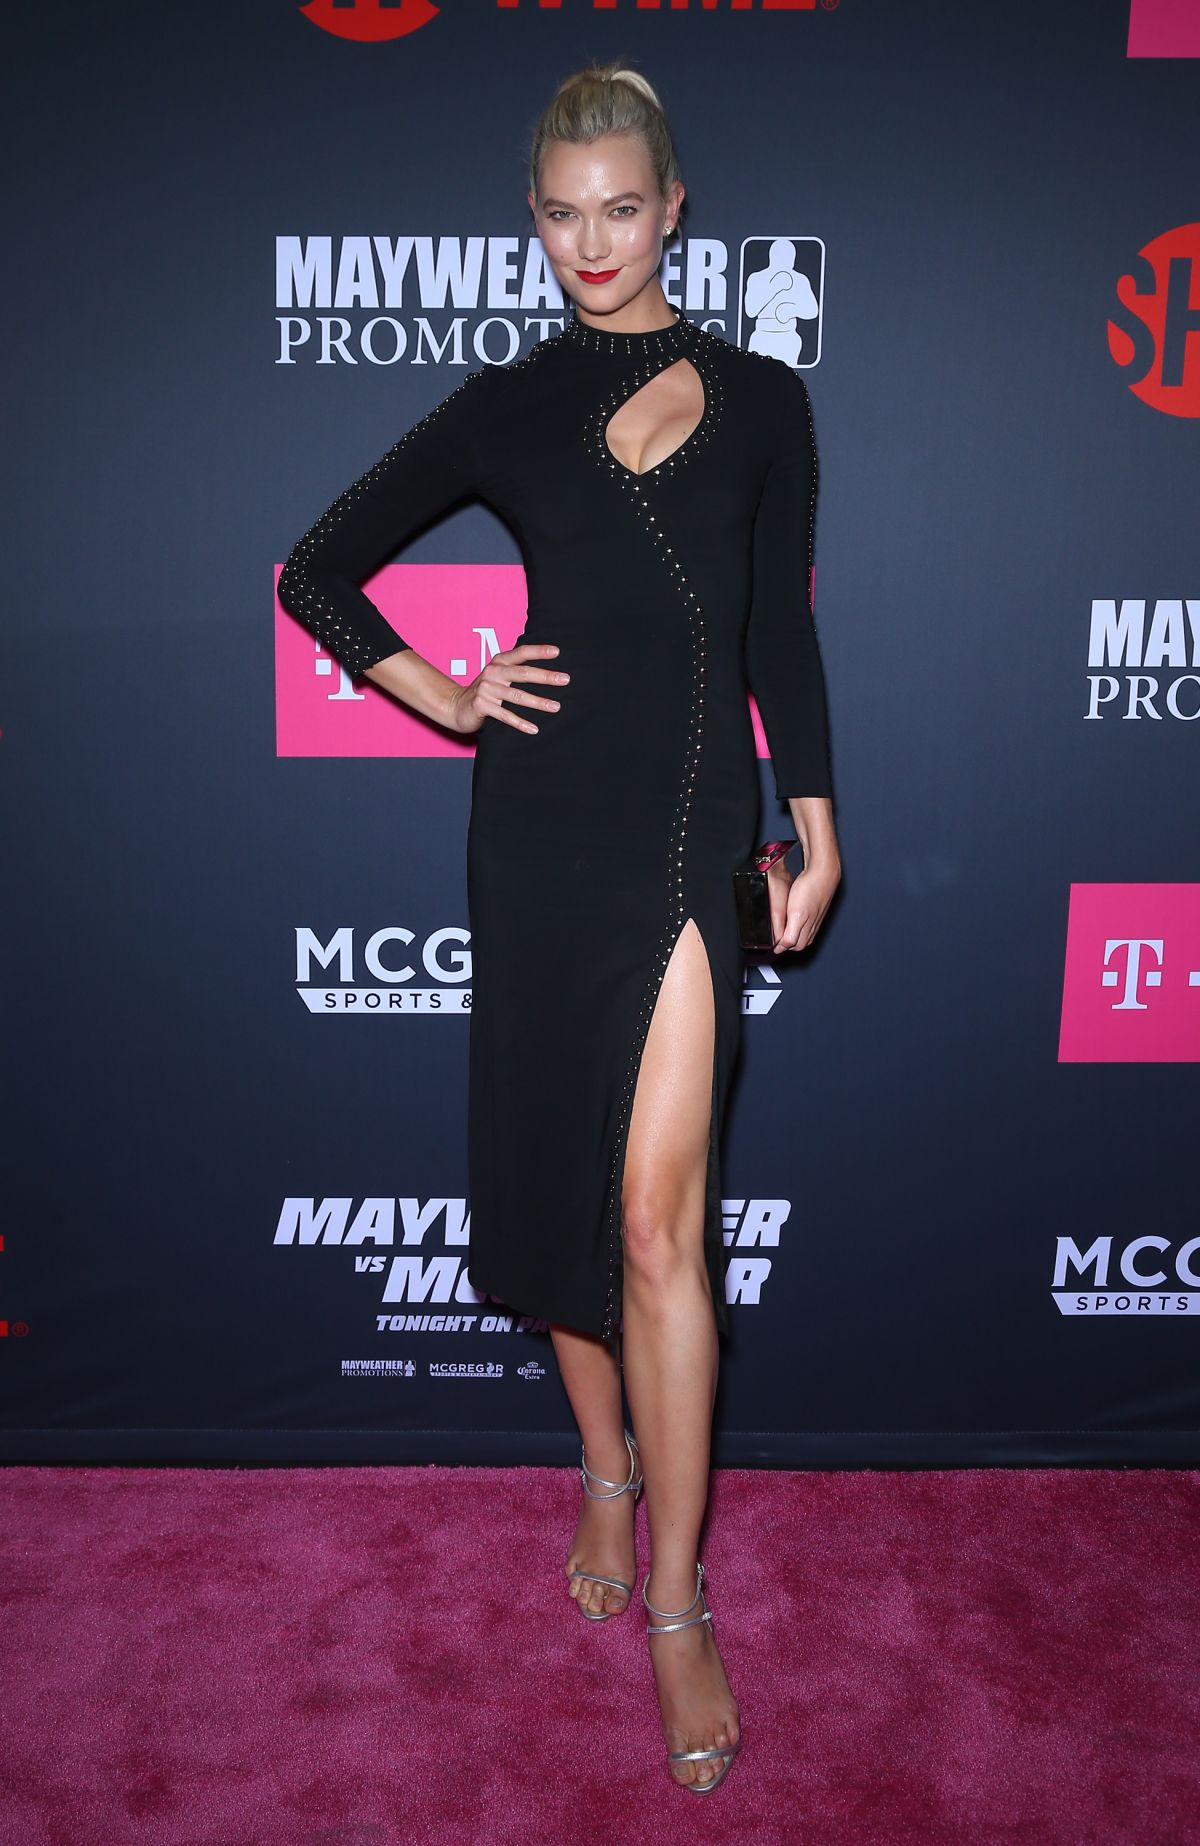 KARLIE KLOSS at Mayweather vs McGregor Pre-fight VIP Party in Las Vegas 08/26/2017